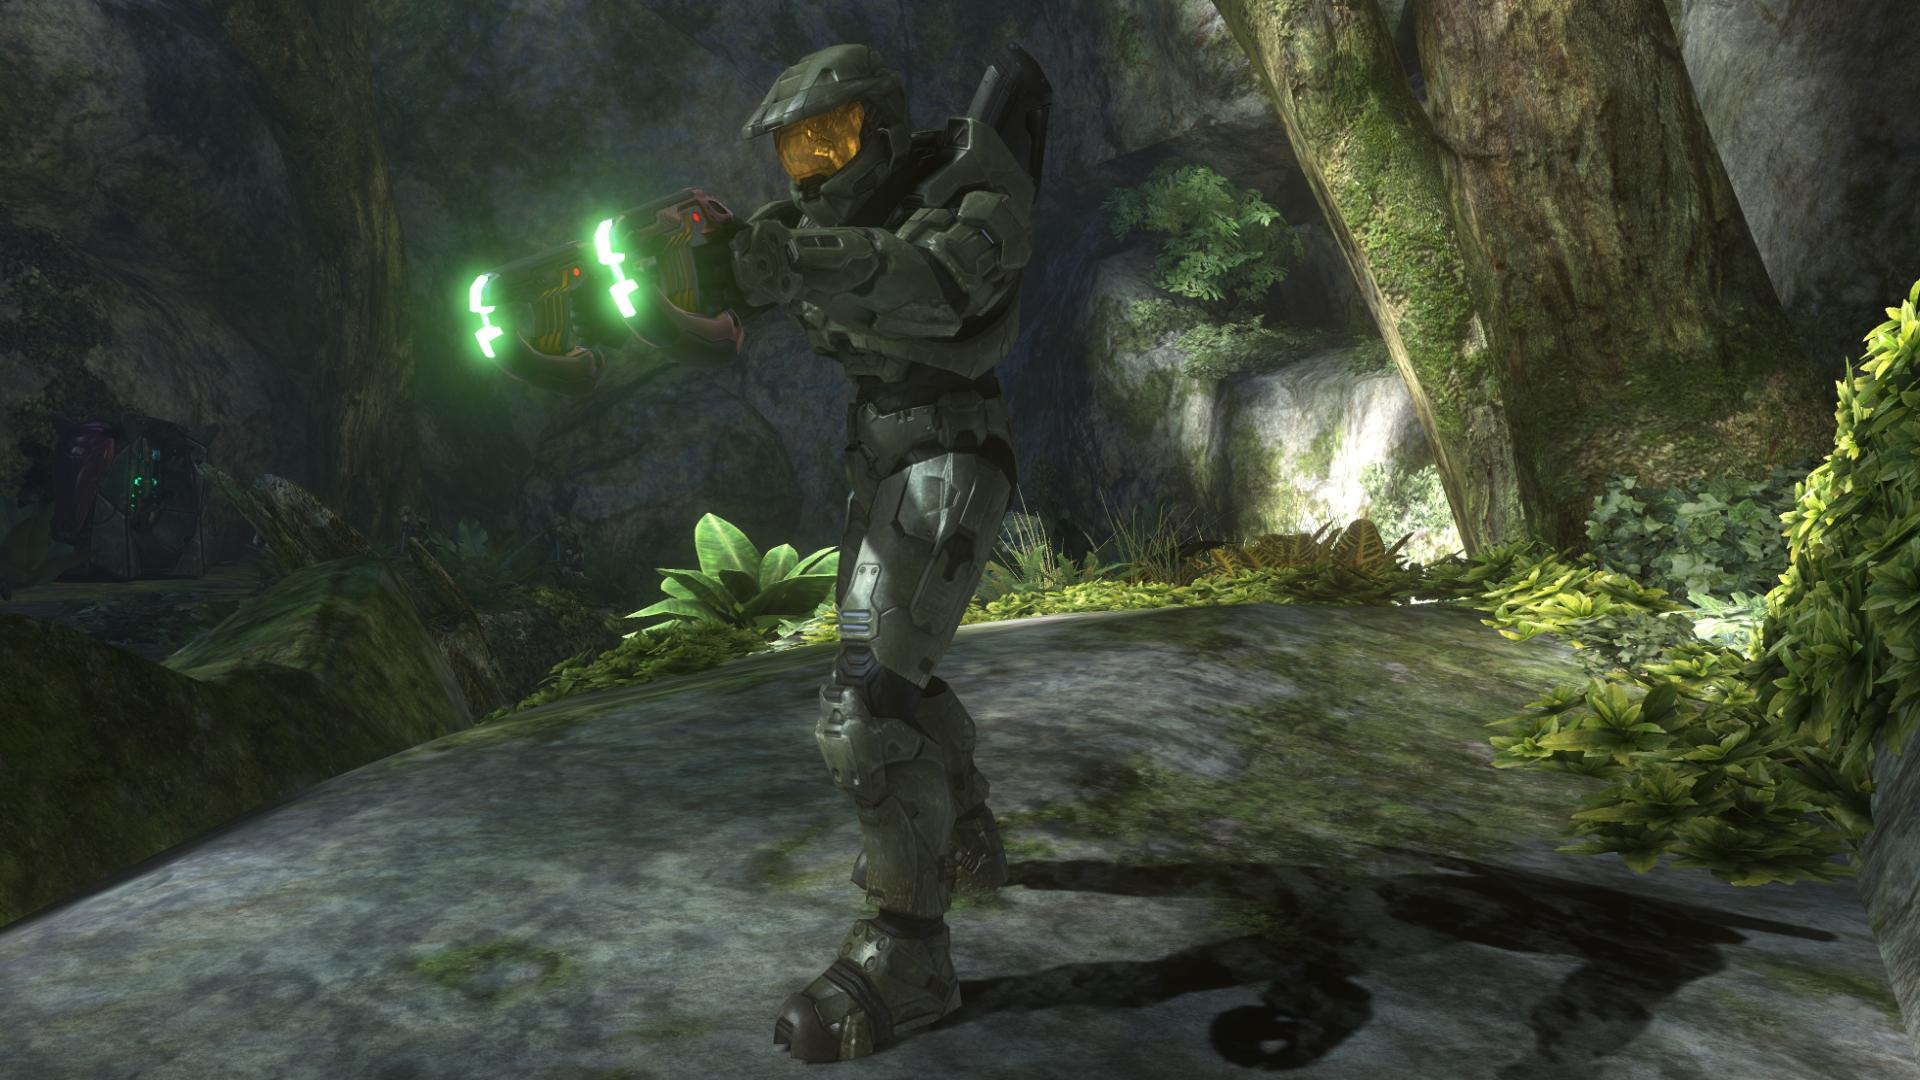 1520632073 85f24cd4e0 o Halo 3: Landscape + Water